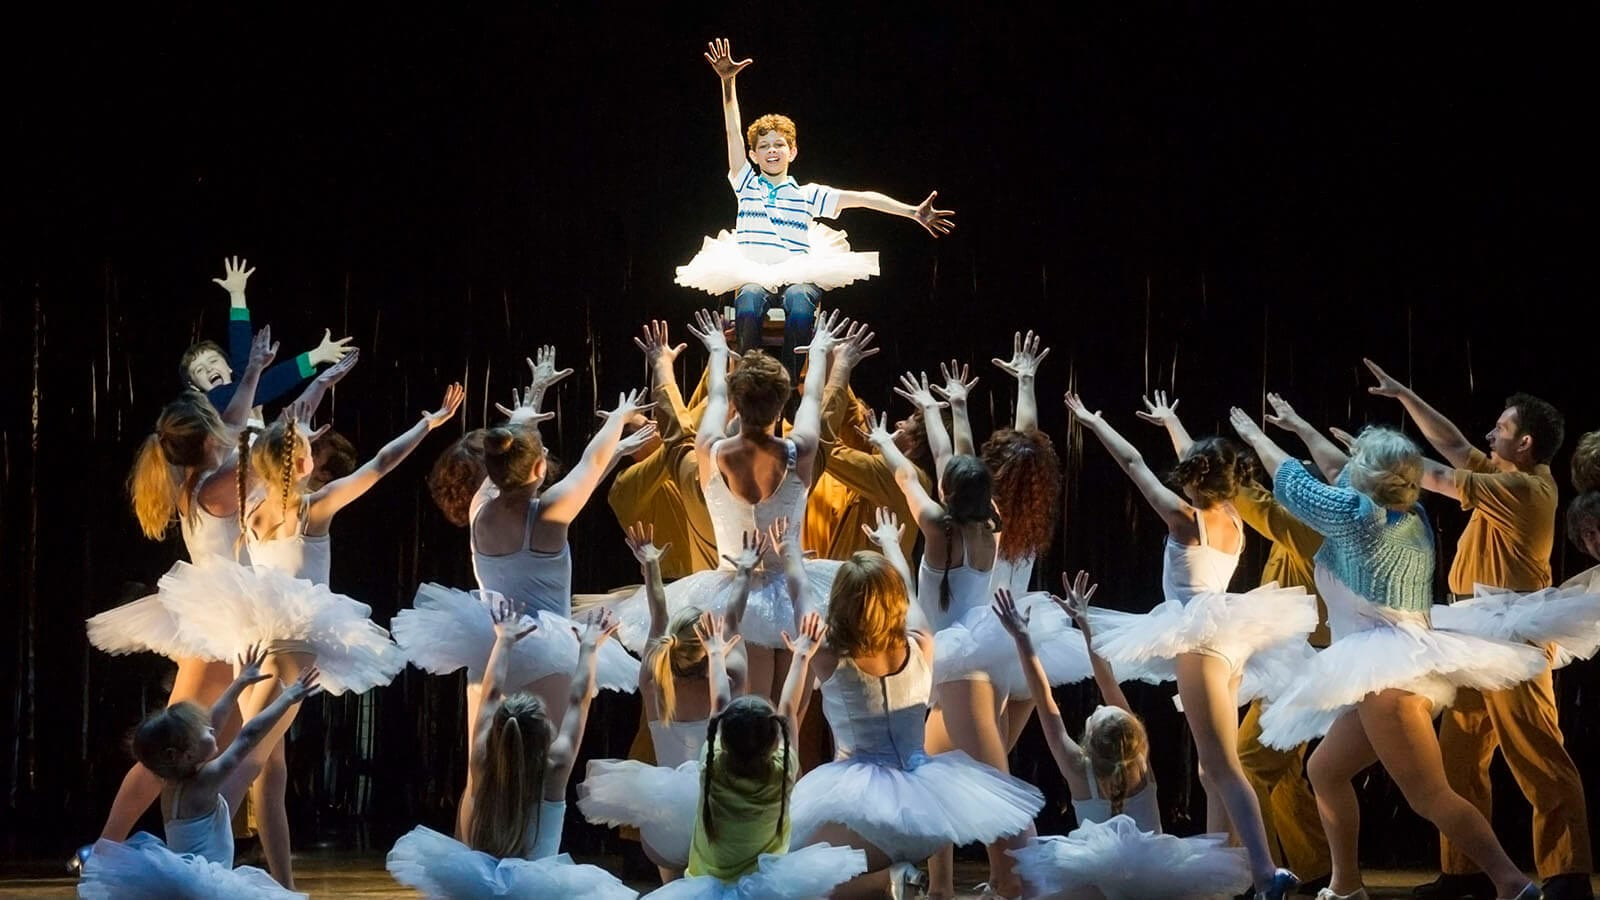 Adam Abbou Billy Elliot and Ensemble. Photo by Alastair Muir